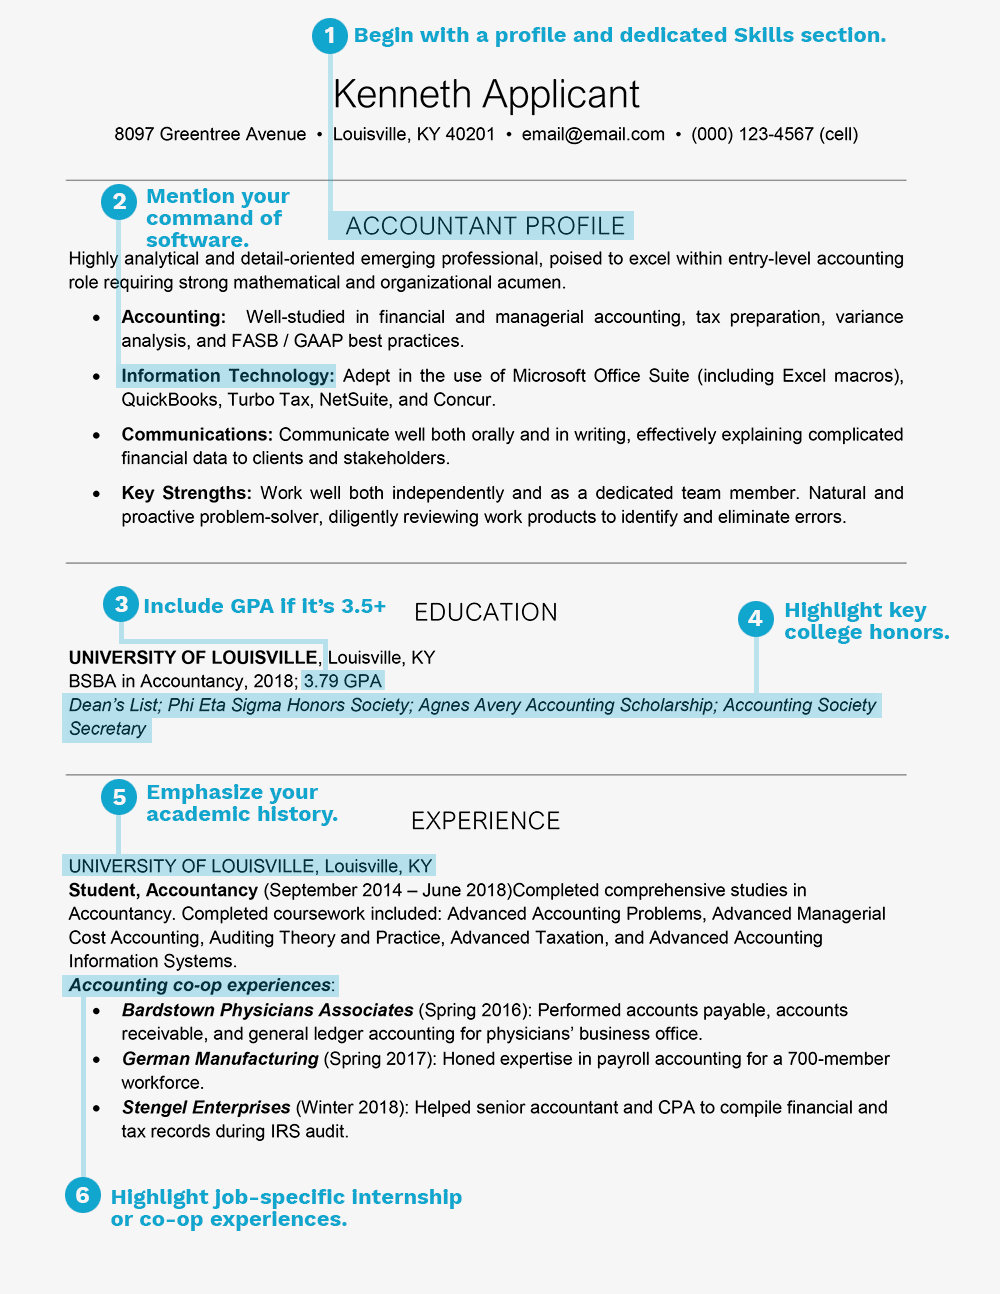 Resume Templates for College Students - Resume Tips for College Students and Graduates